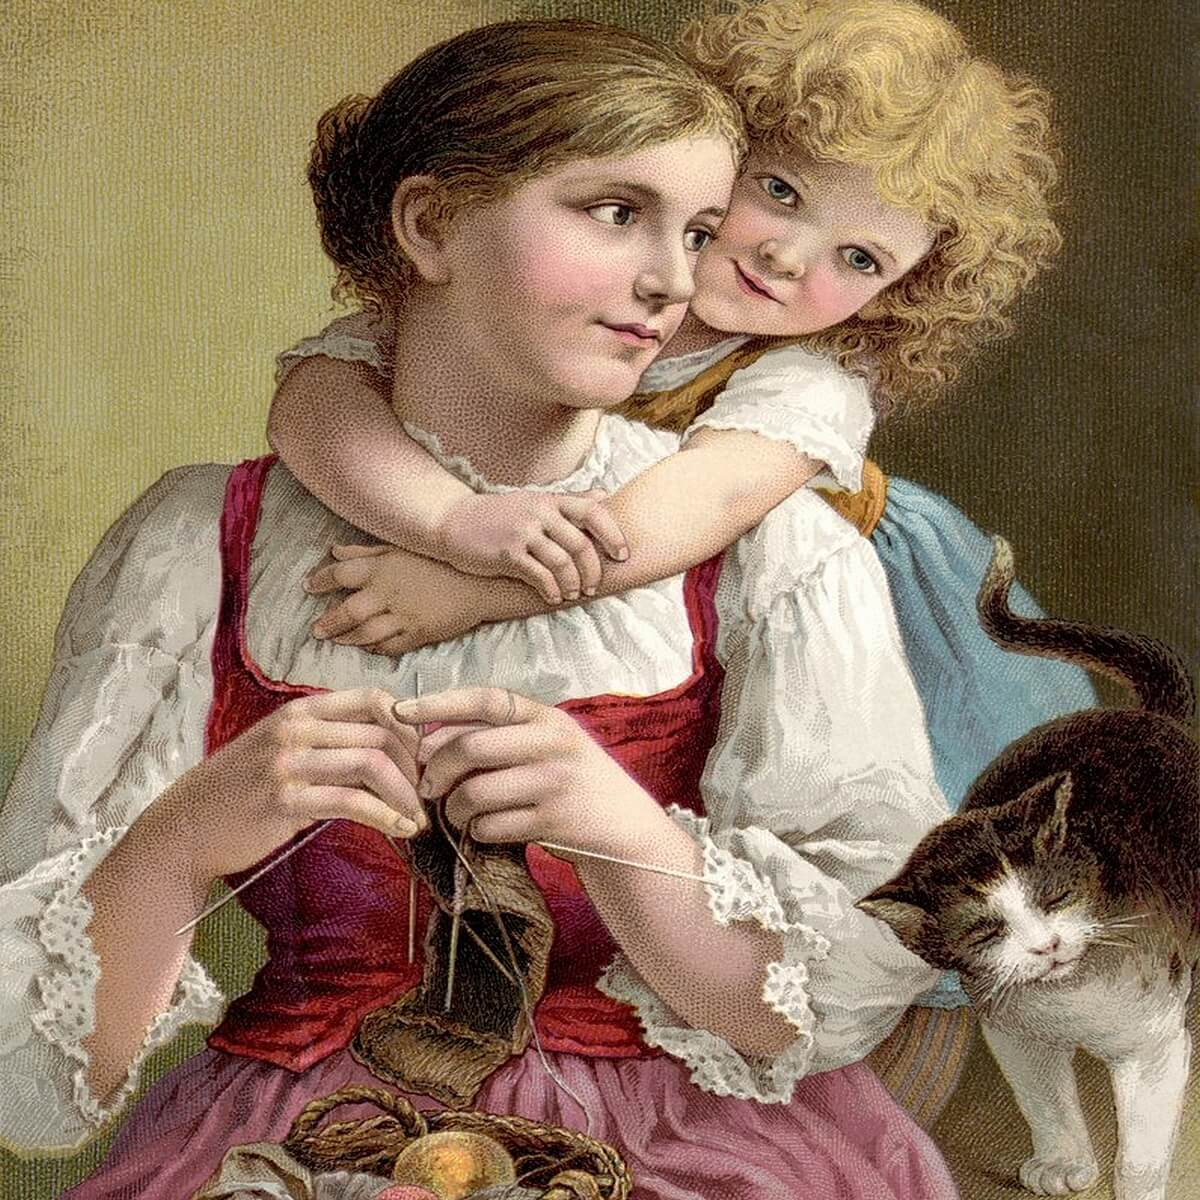 mother knitting with child